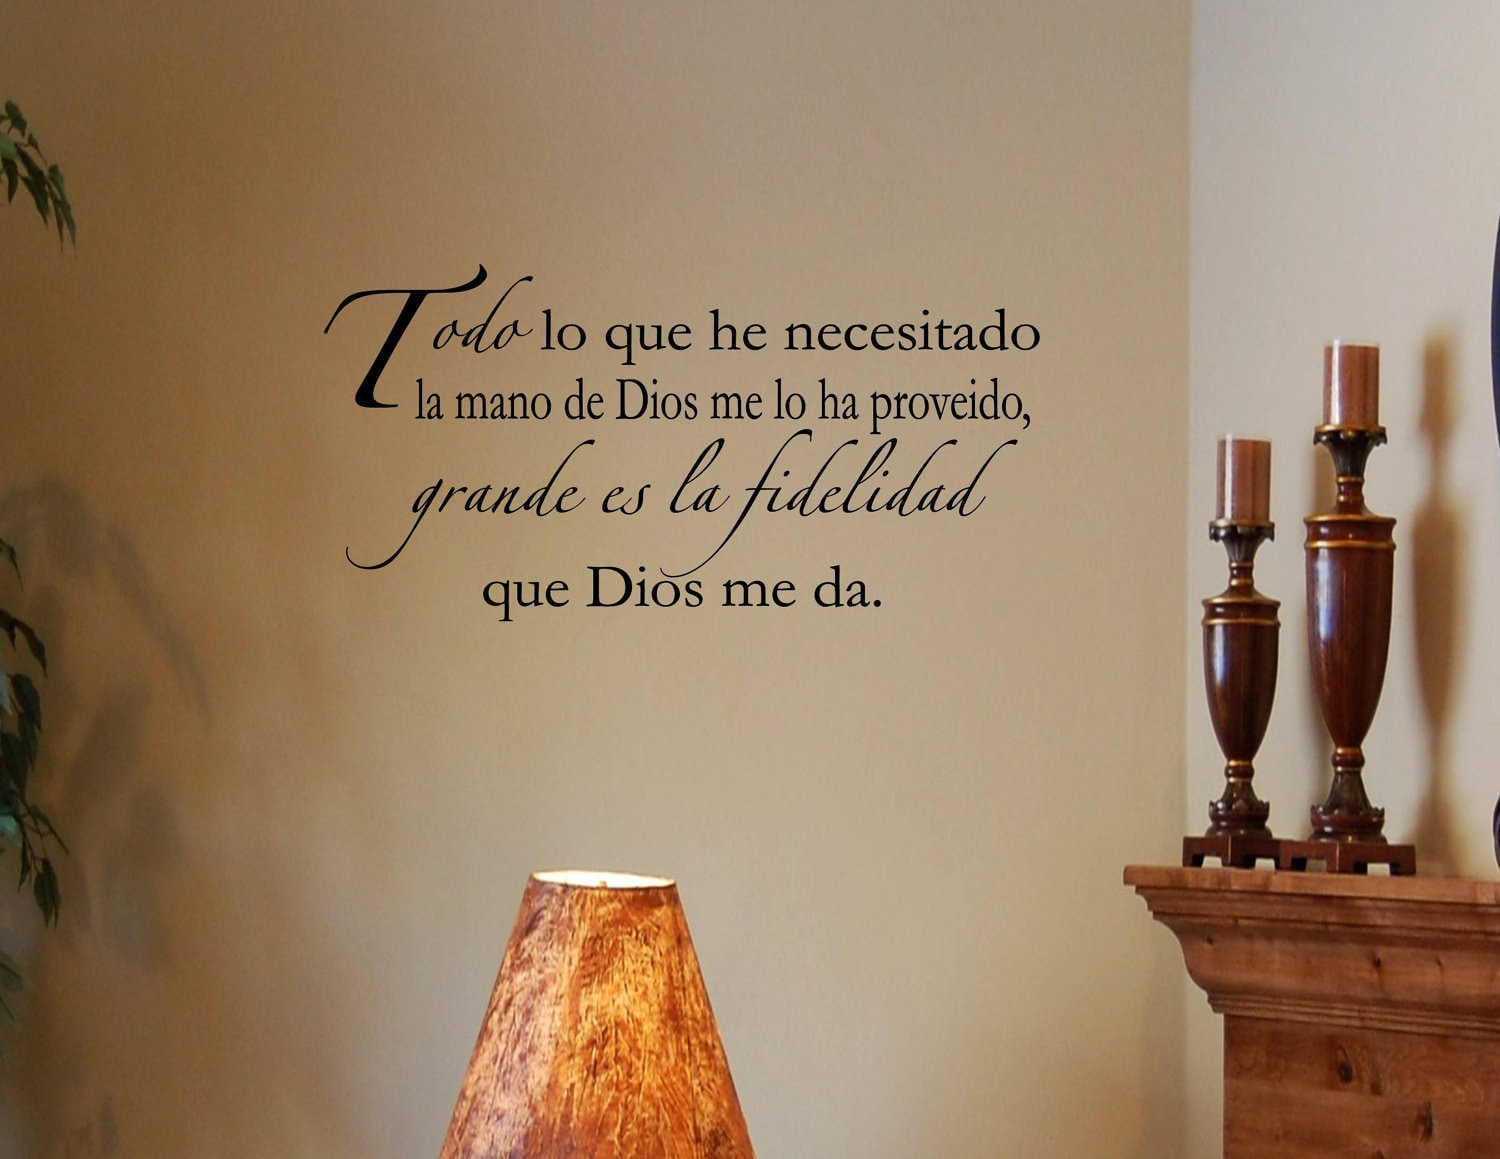 Quotes In Spanish Spanish Vinyl Wall Quotes Espanol Todo Lo Que He Necesitado La